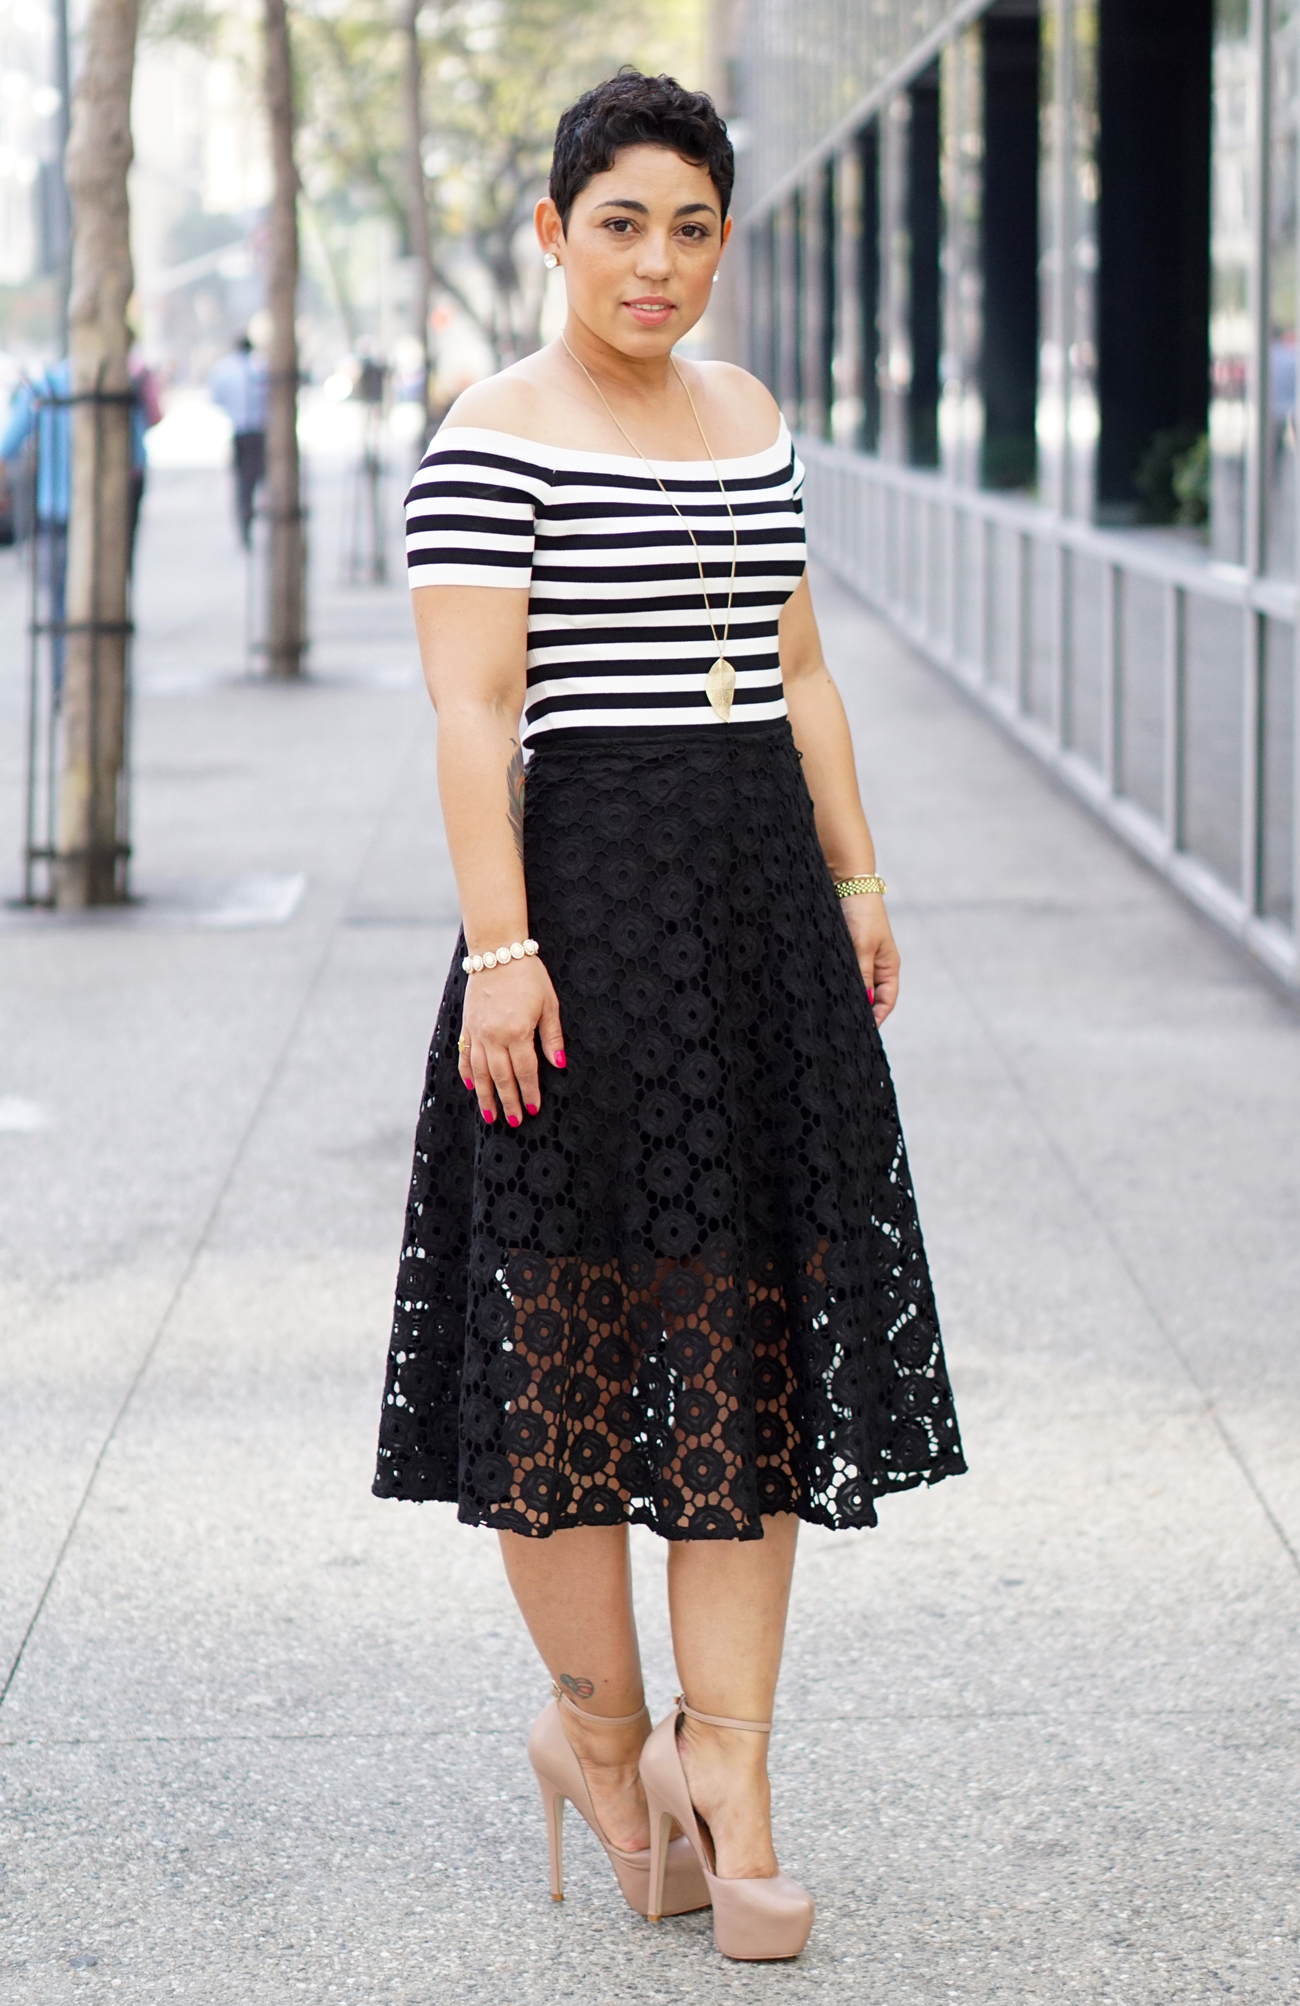 DIY Embroidered Lace Skirt + Striped Top   Mimi G Style